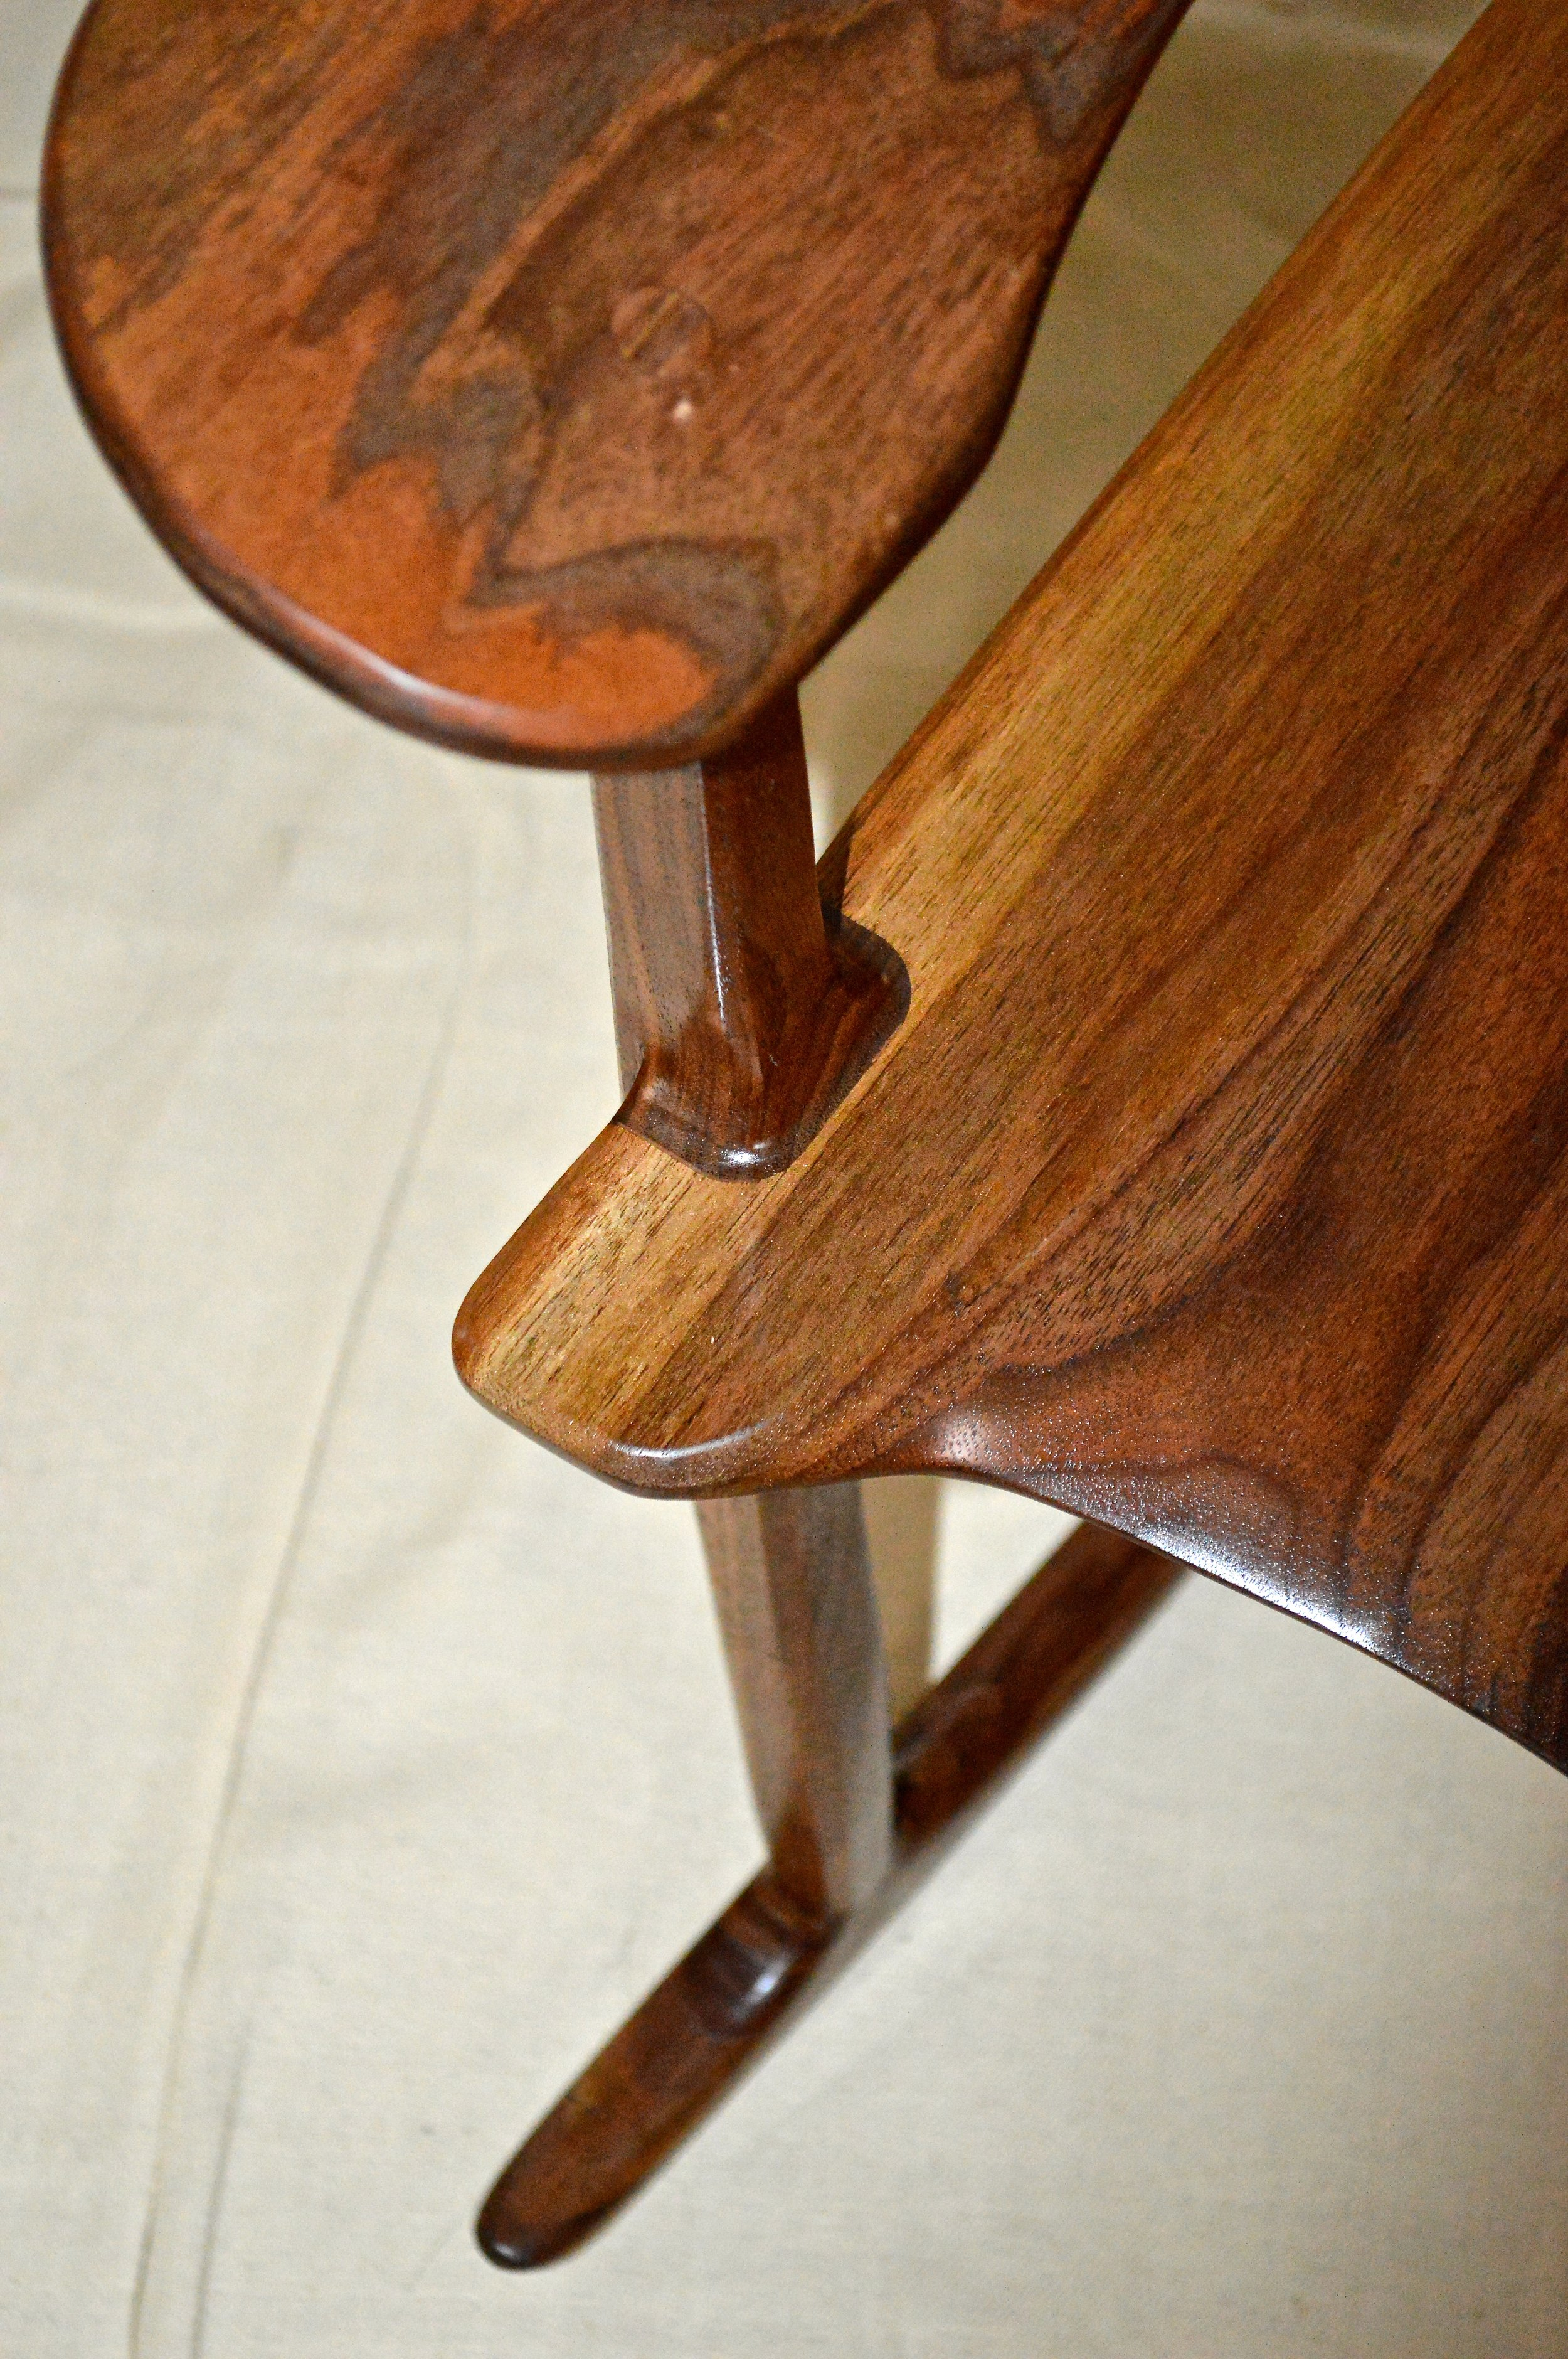 above: on the seat side after shaping and finishing the front leg, in black walnut